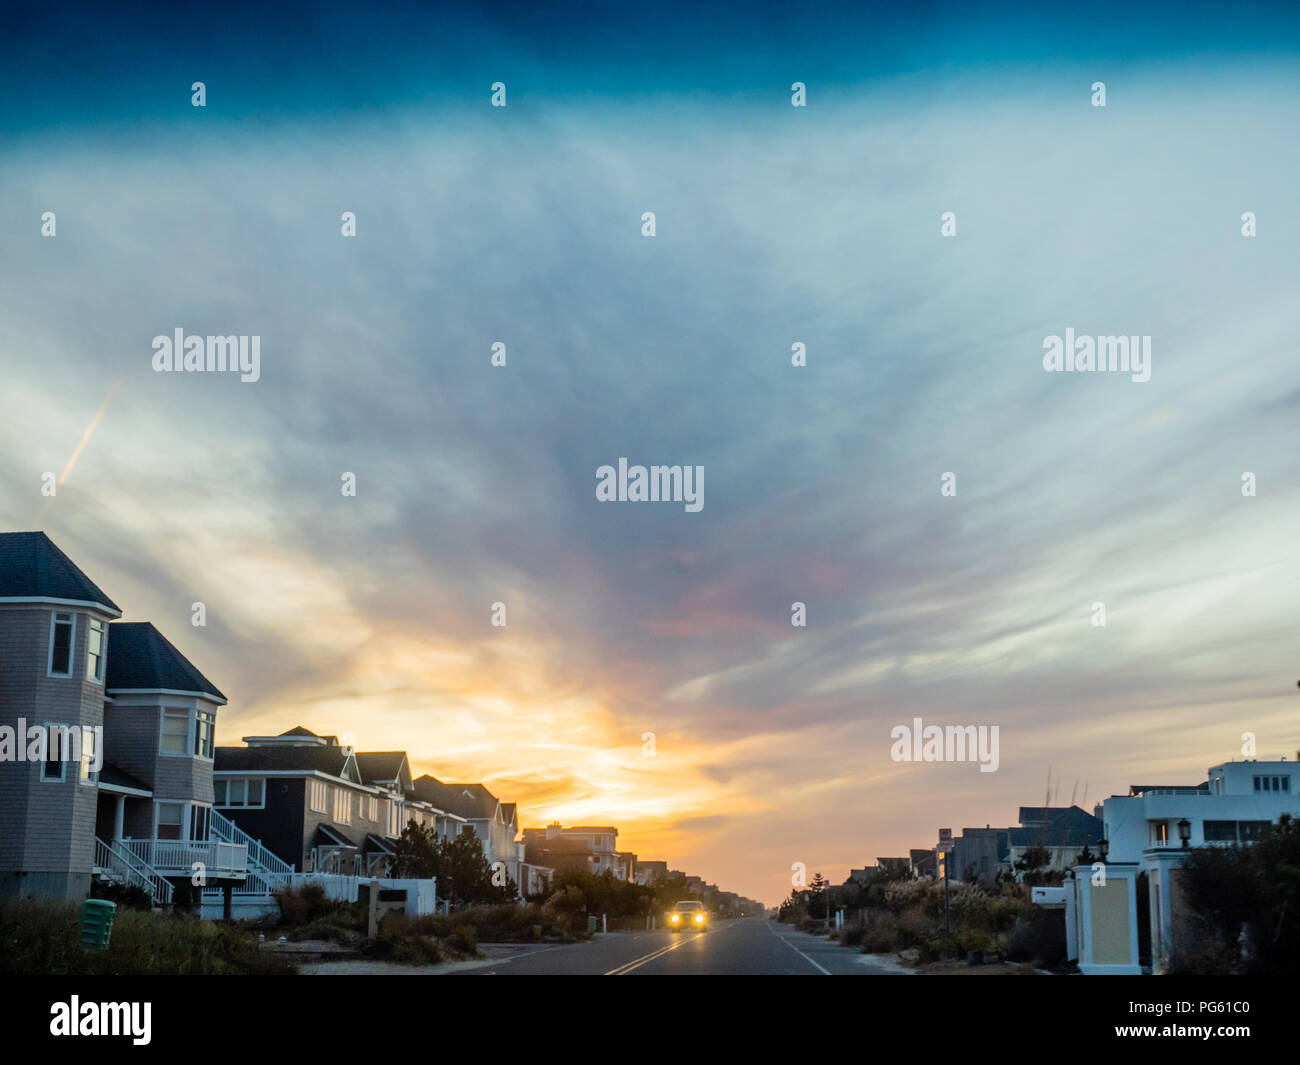 View of homes at sunset on Dune Road, Westhampton, the Hamptons, Long Island, New York, USA. - Stock Image